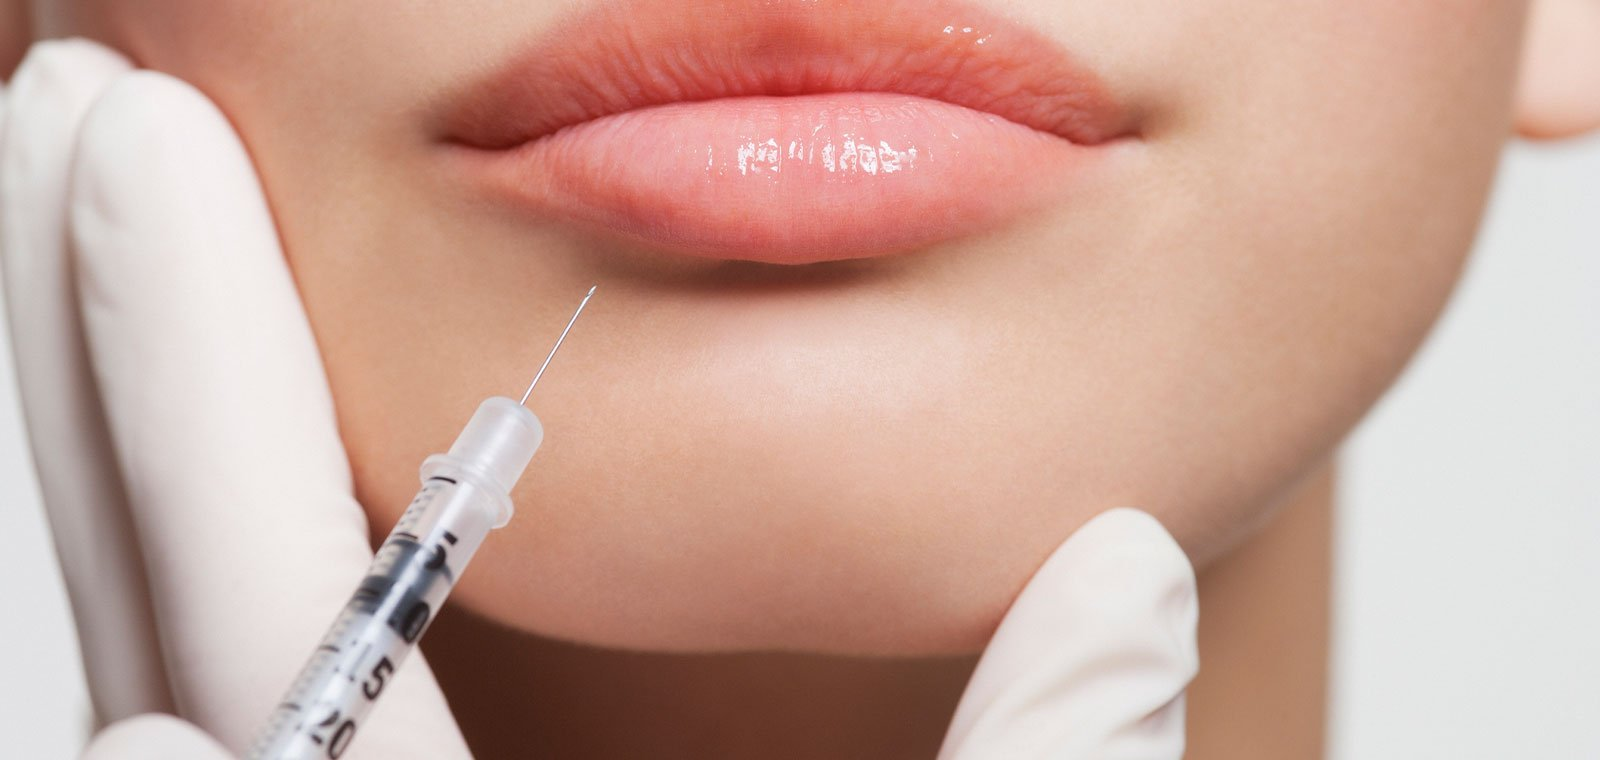 Facial fillers can take years off your face by restoring volume and fullness and enhancing your natural features.